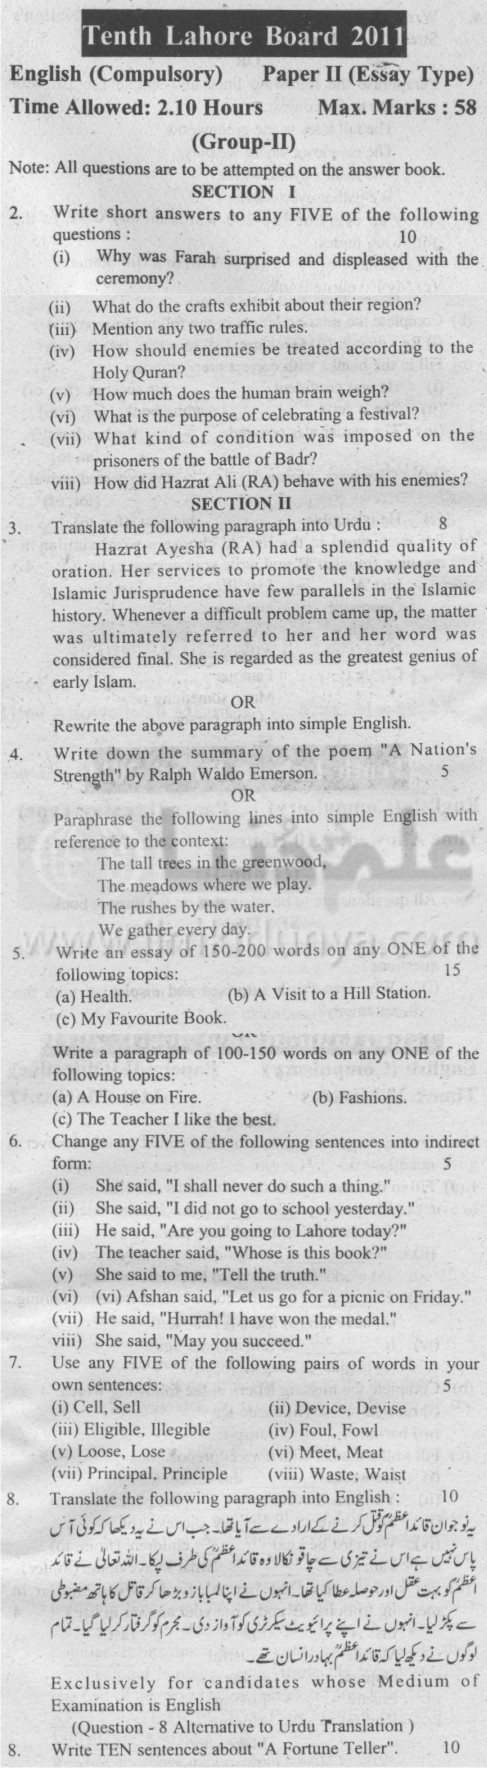 th class english compulsory essay type group ii lahore board